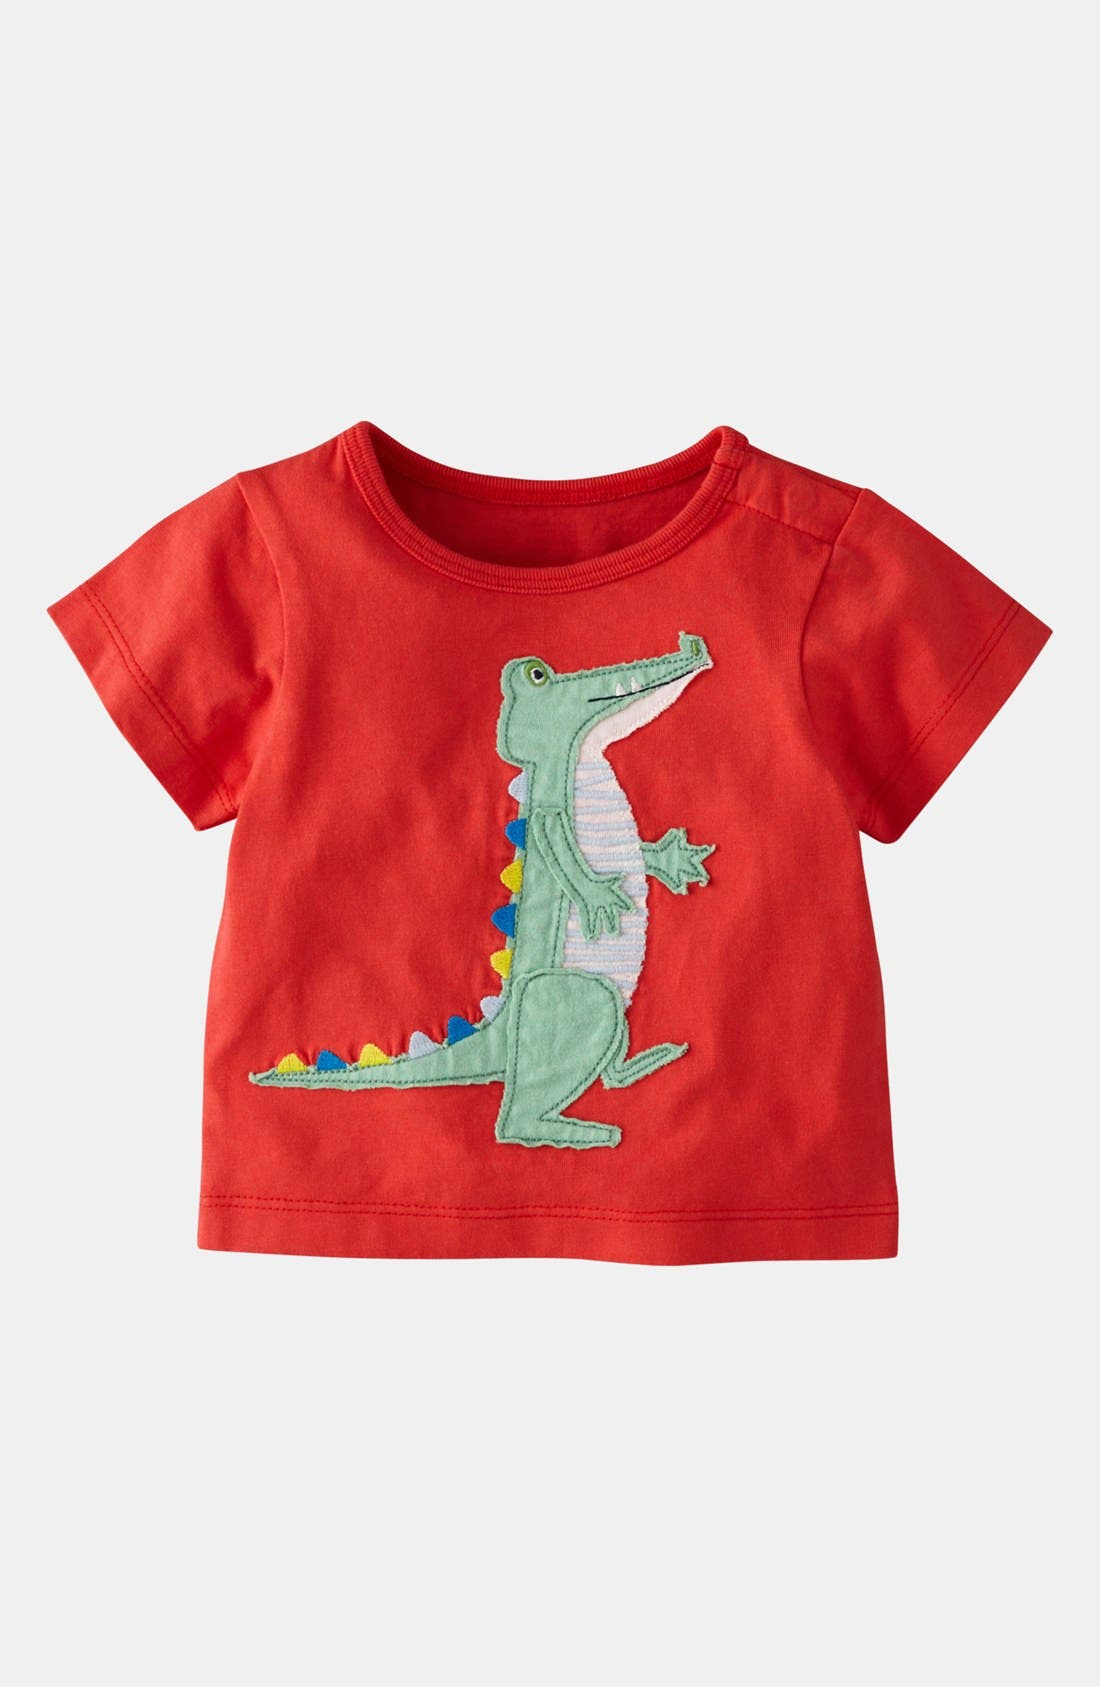 Alternate Image 1 Selected - Mini Boden 'Big Appliqué' T-Shirt (Baby)